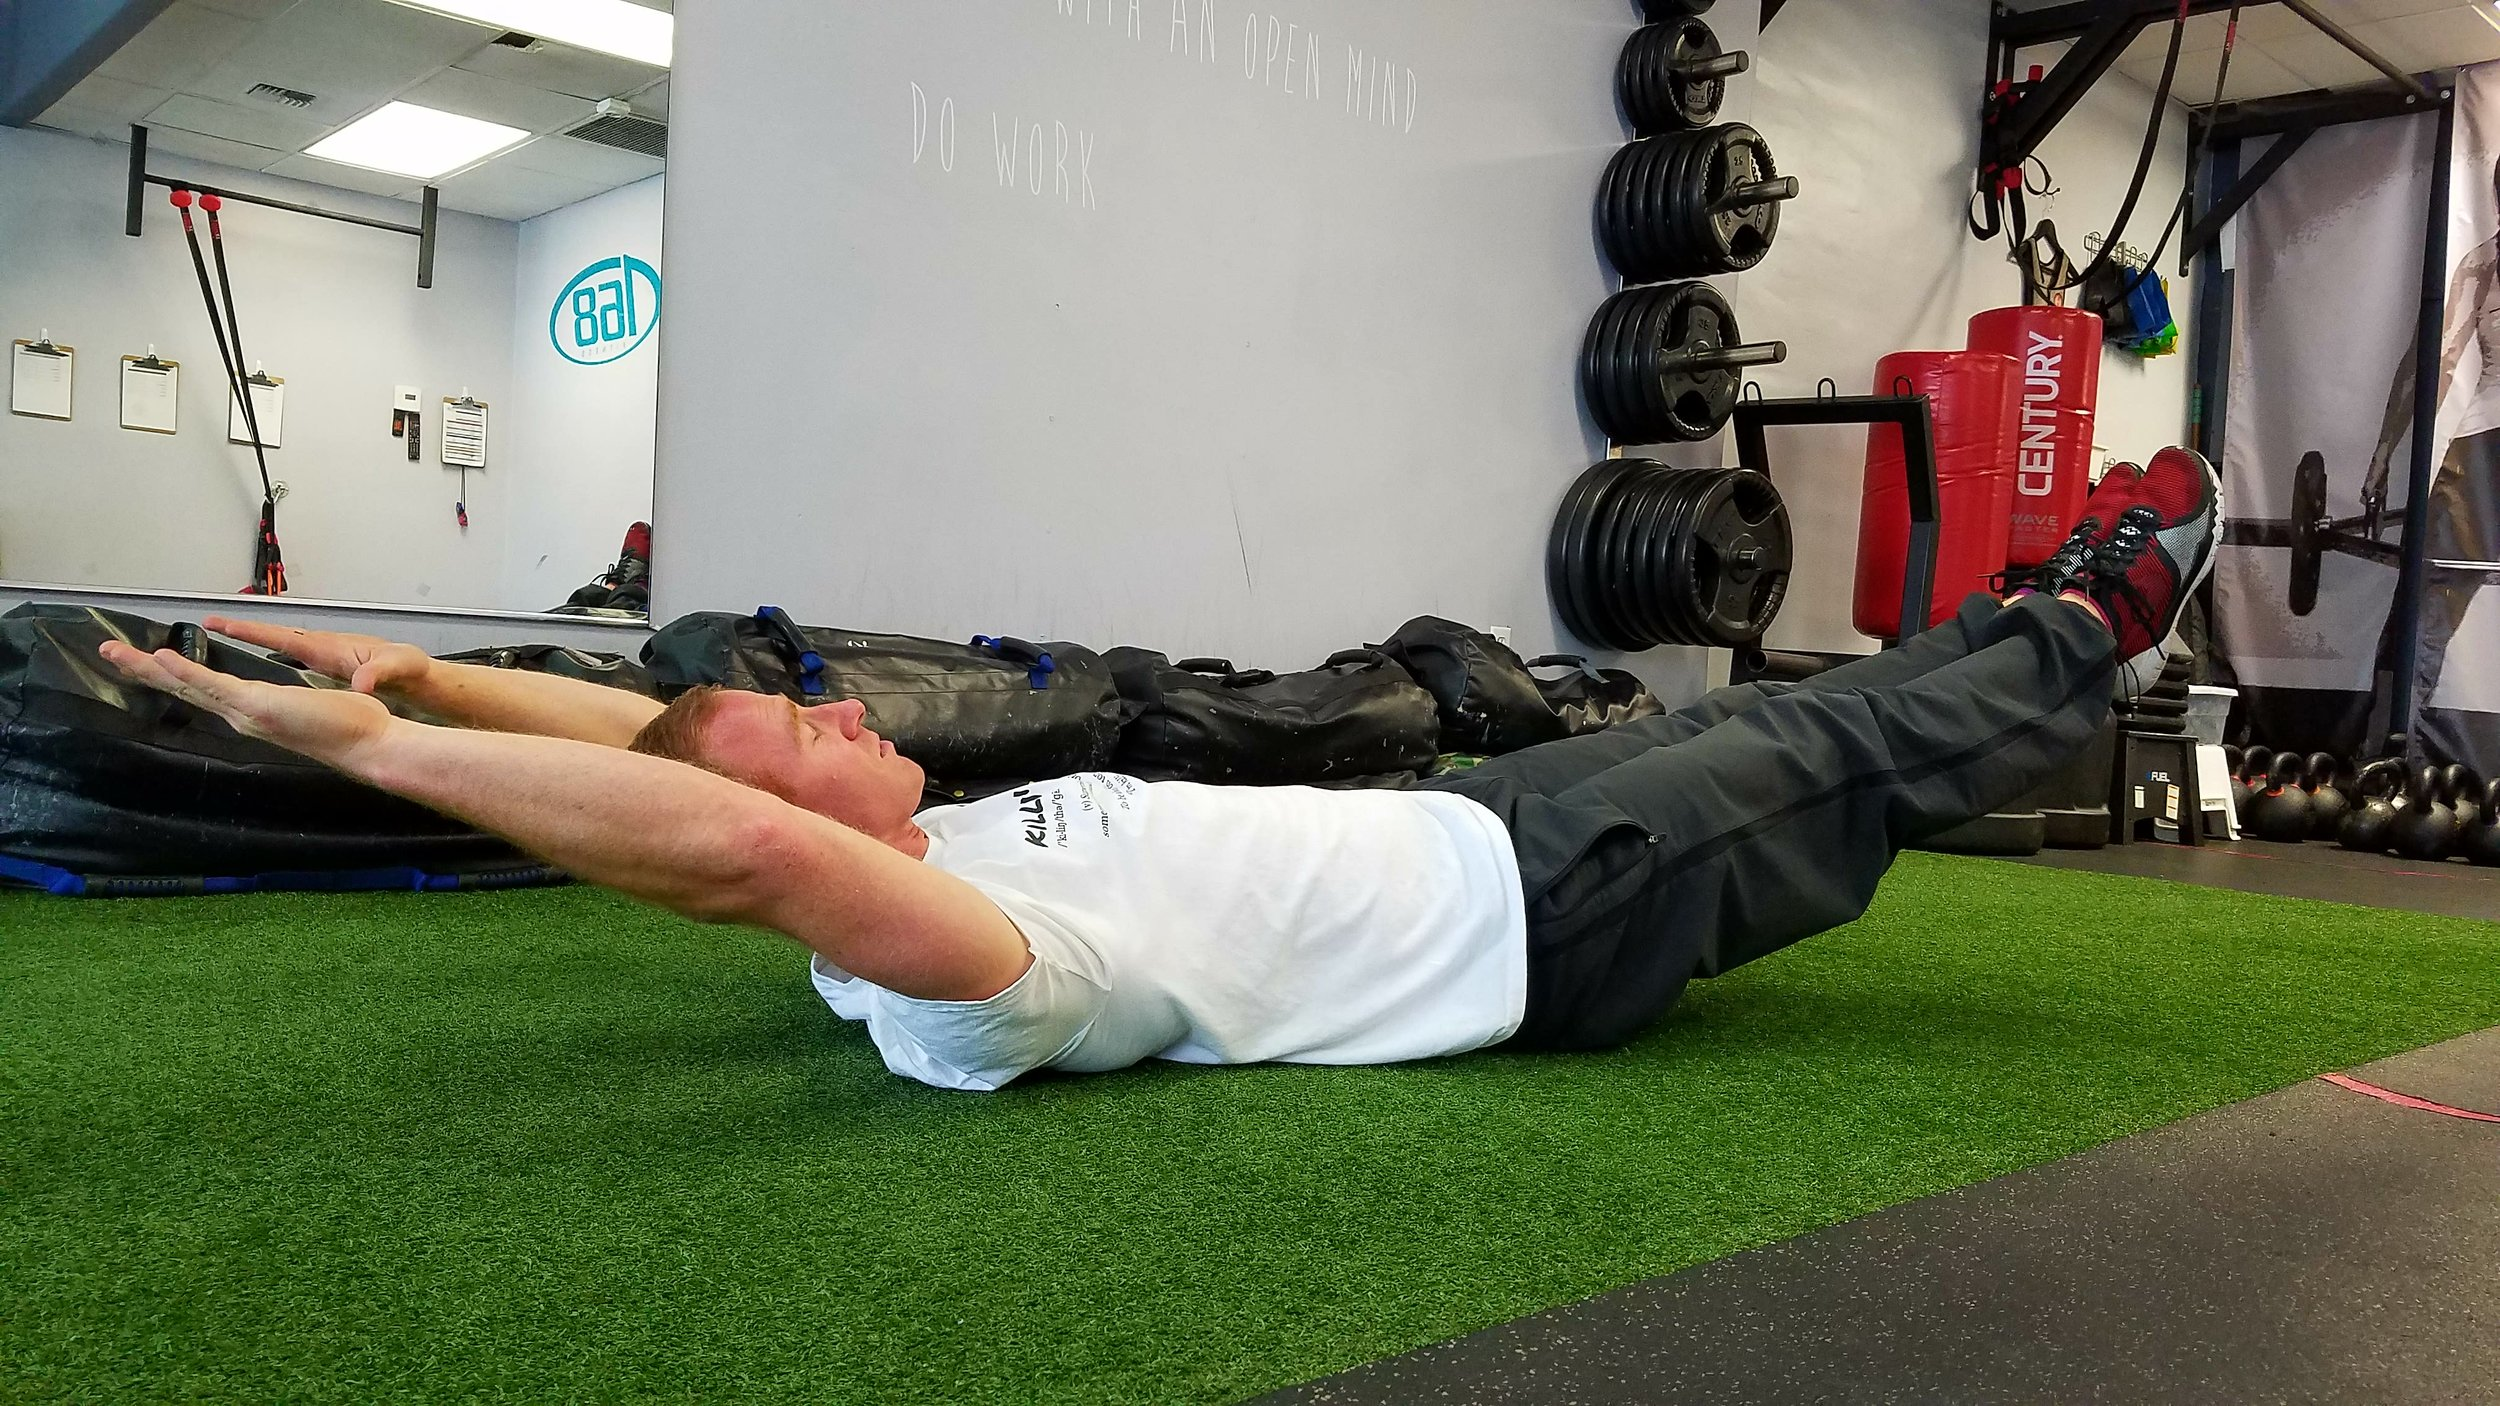 Press your lower back against the floor while lifting legs, shoulder blades and head off the ground.